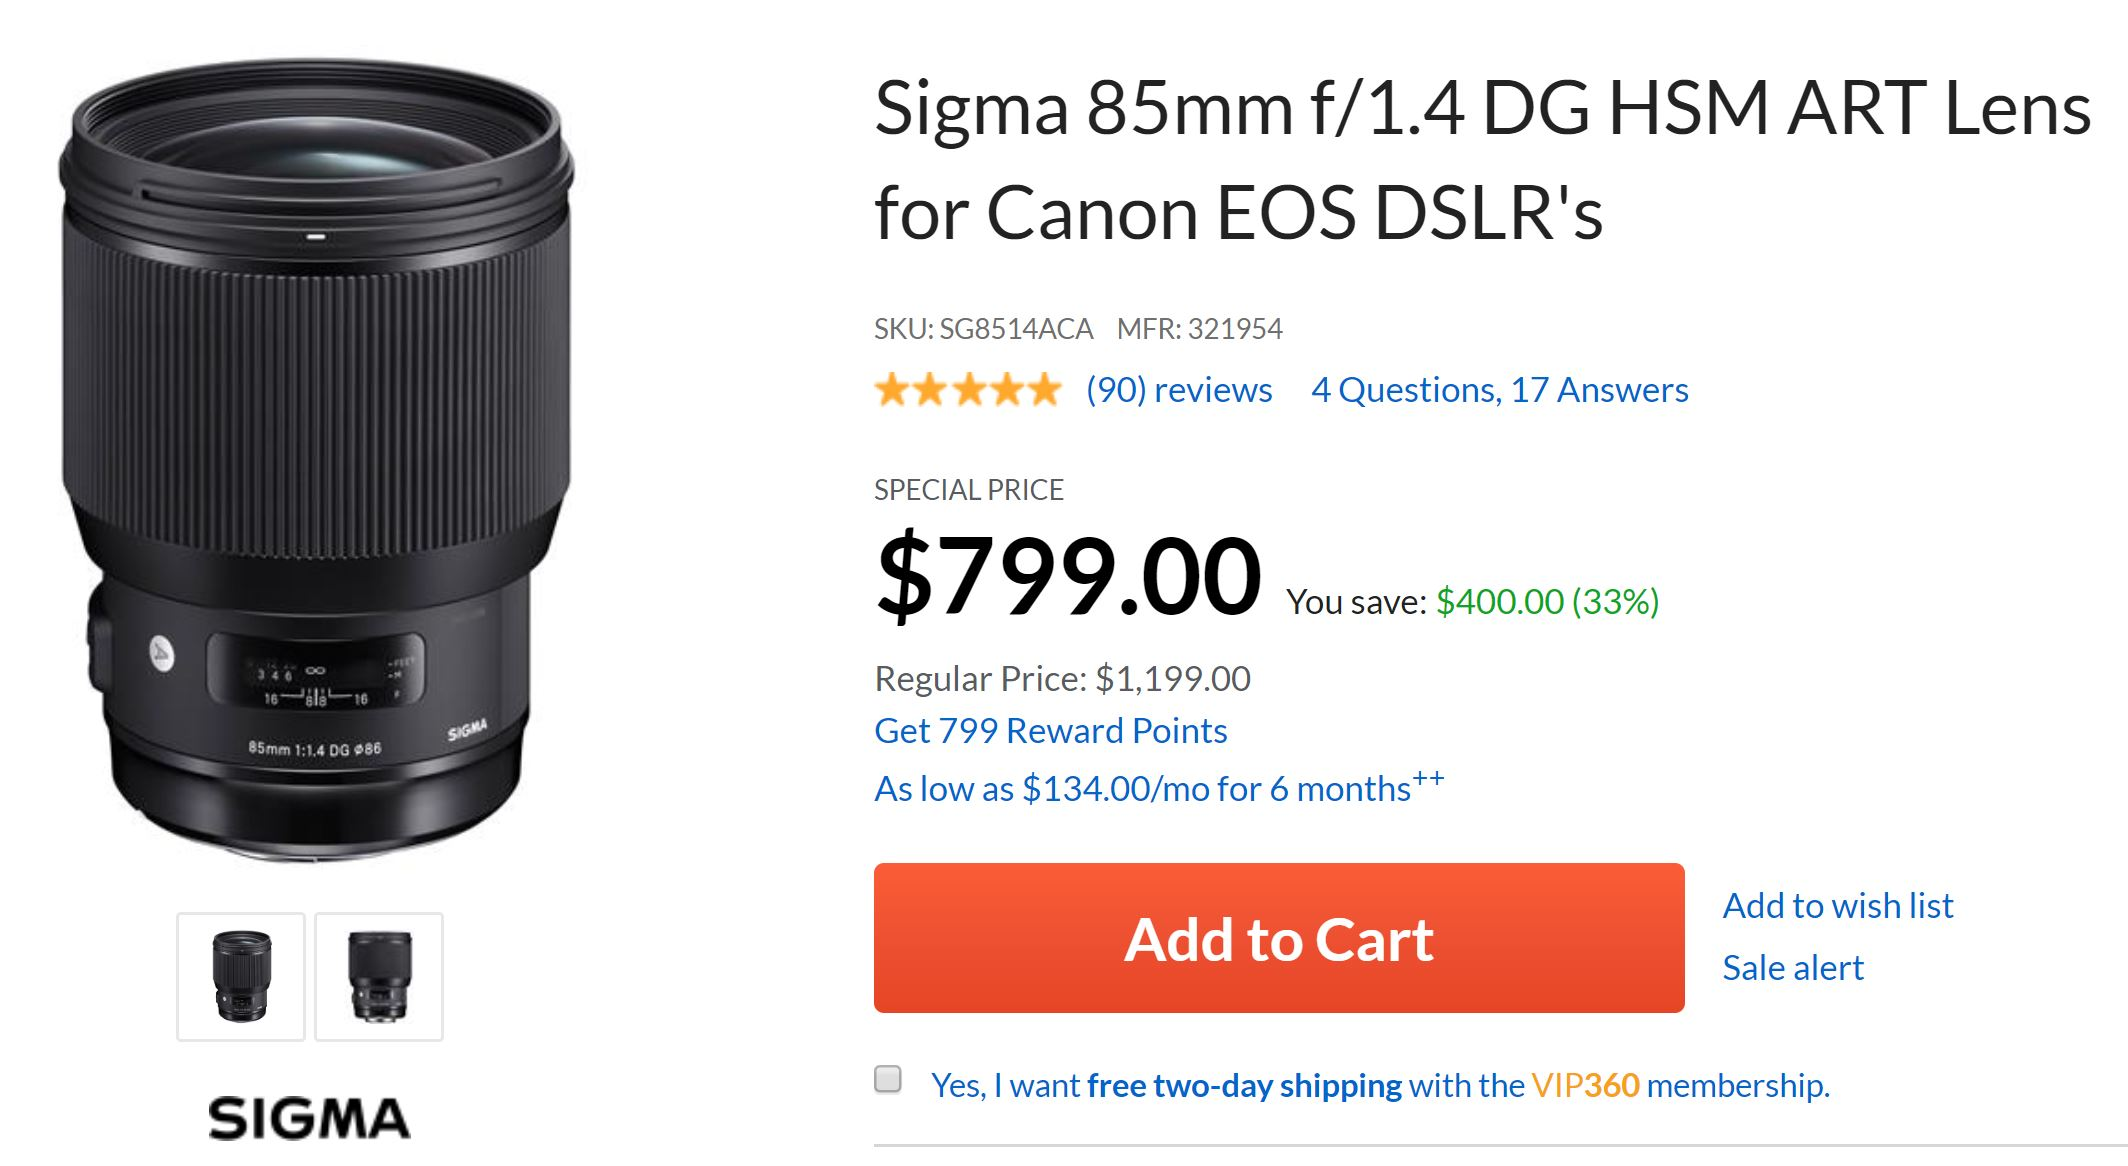 Super Hot ! Sigma 85mm f/1.4 Art for $799, 150-600mm f/5-6.3 C for $649 at Adorama !